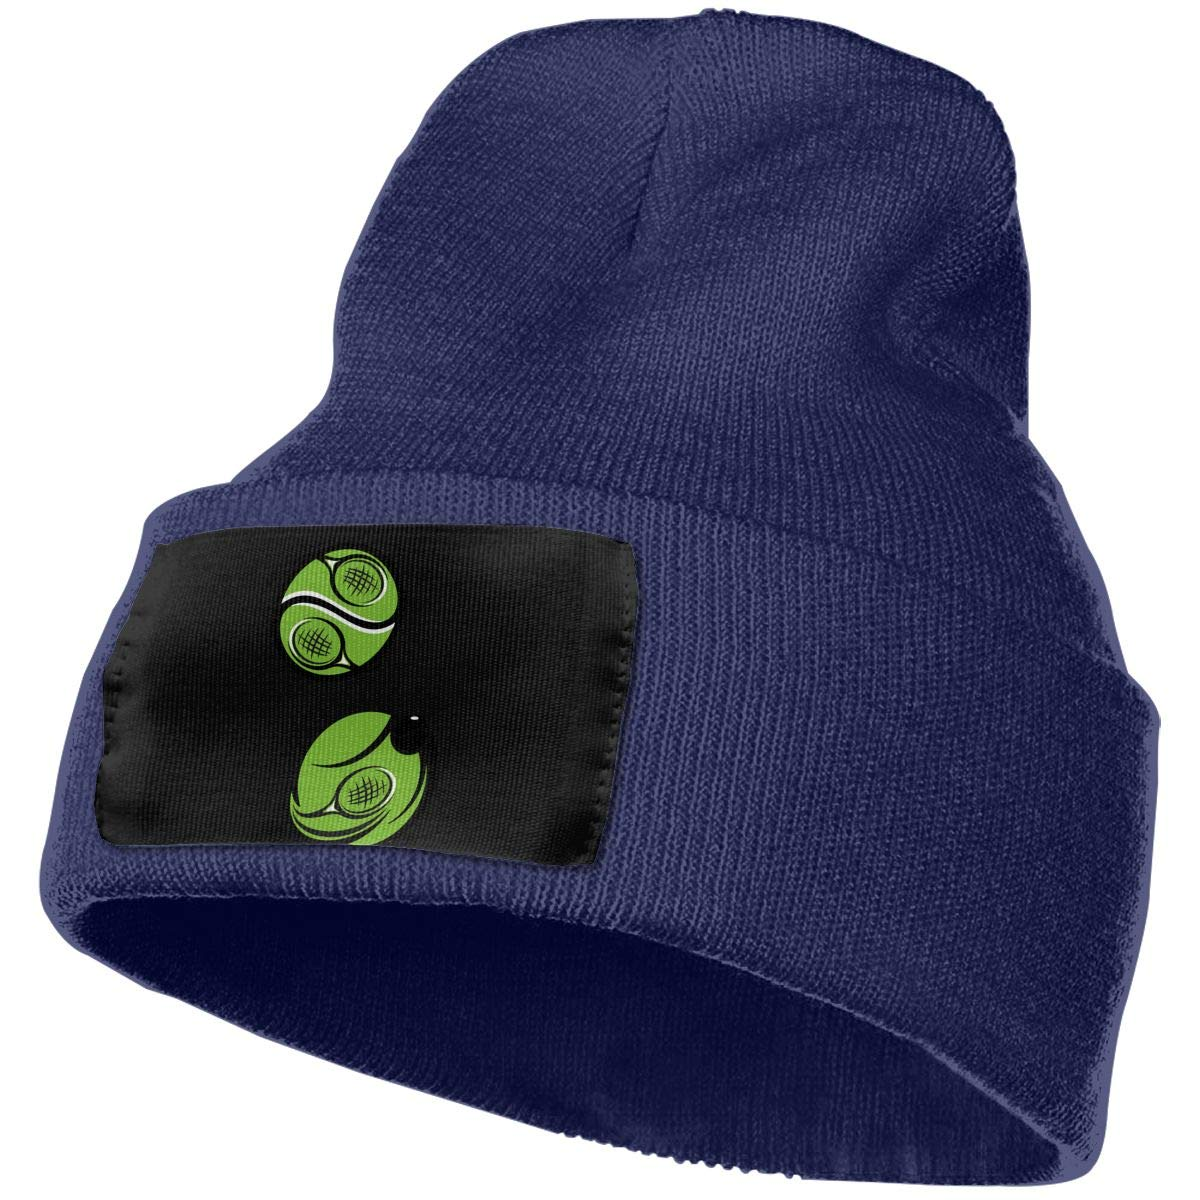 Crossed Tennis Racket Clipart Warm Beanie Hat WHOO93@Y Mens and Womens 100/% Acrylic Knitting Hat Cap